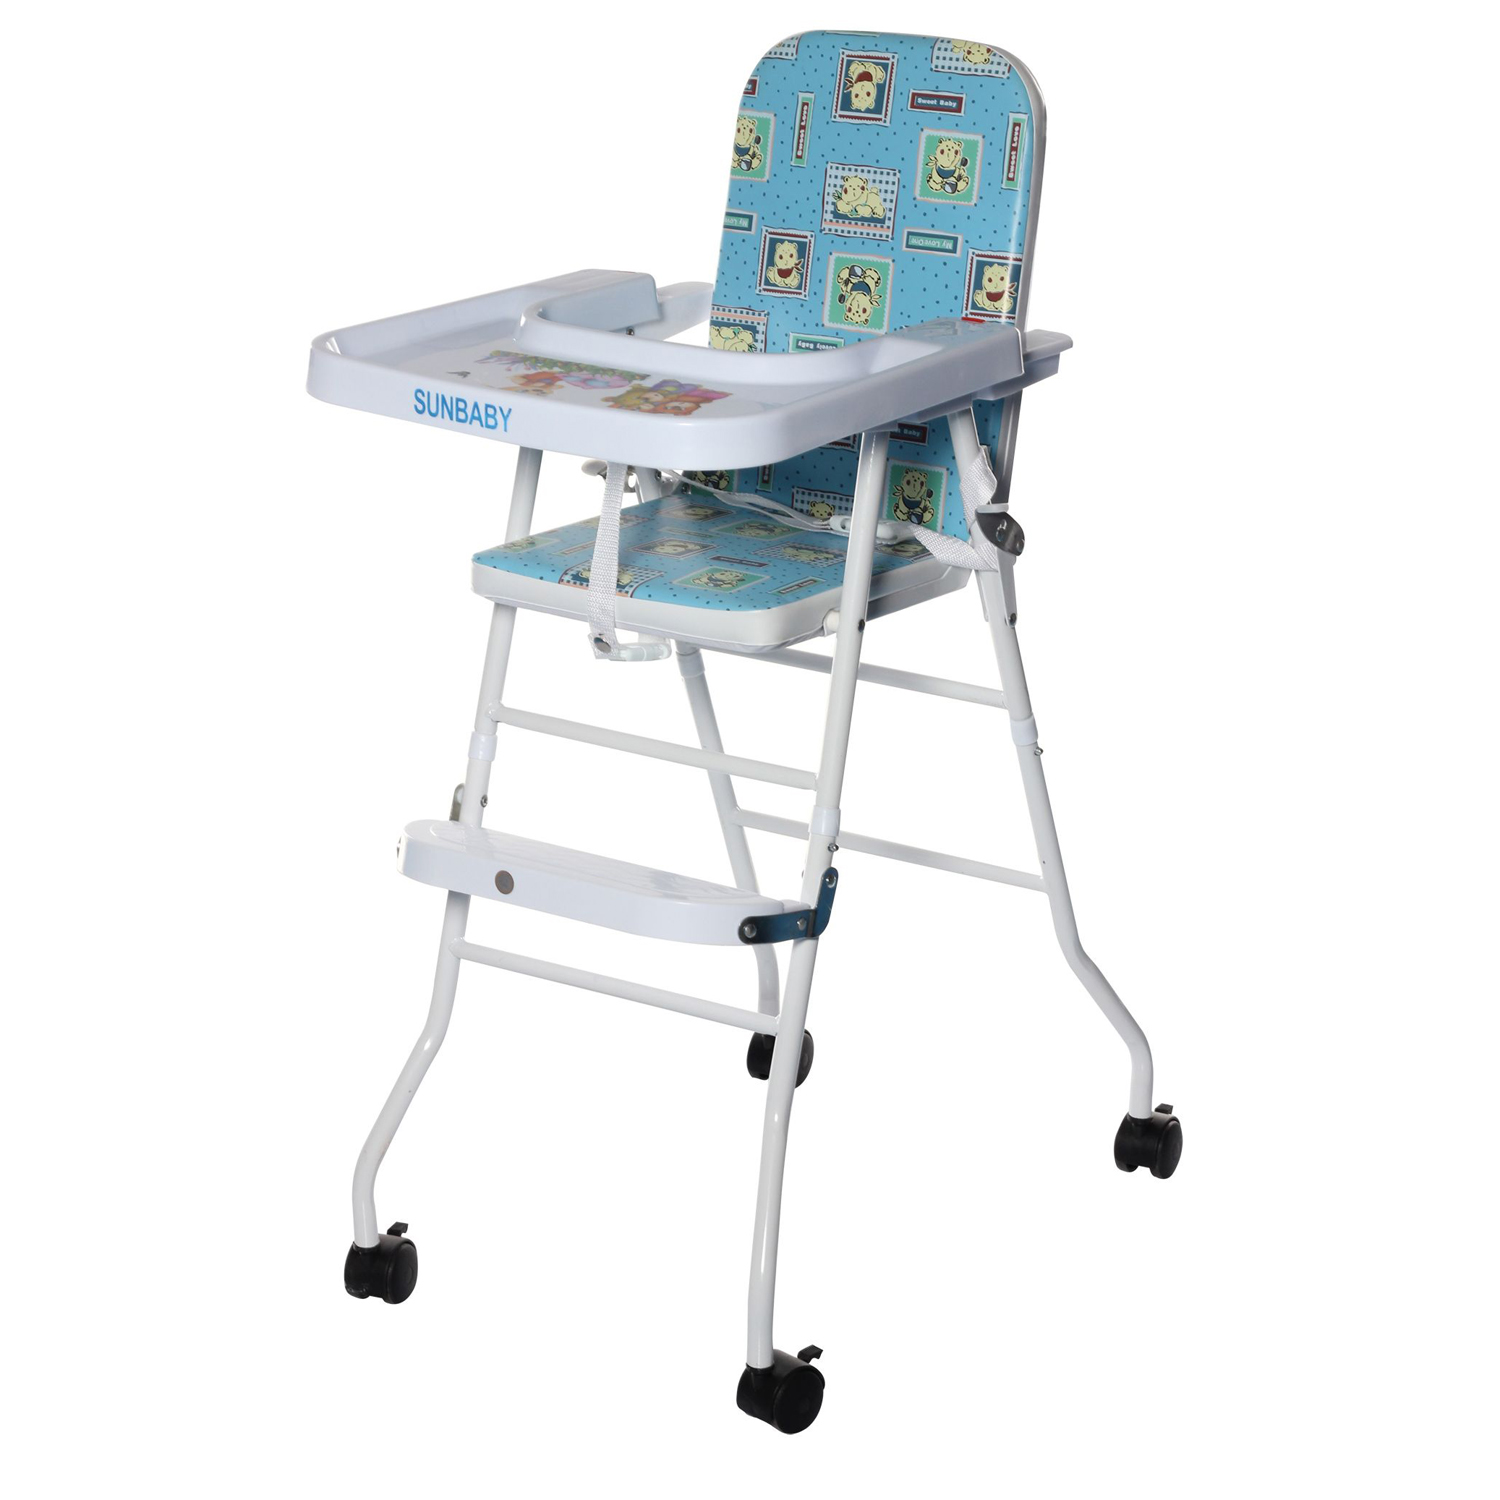 Buy Sunbaby High Chair 4217W Student Desk & Table line In India